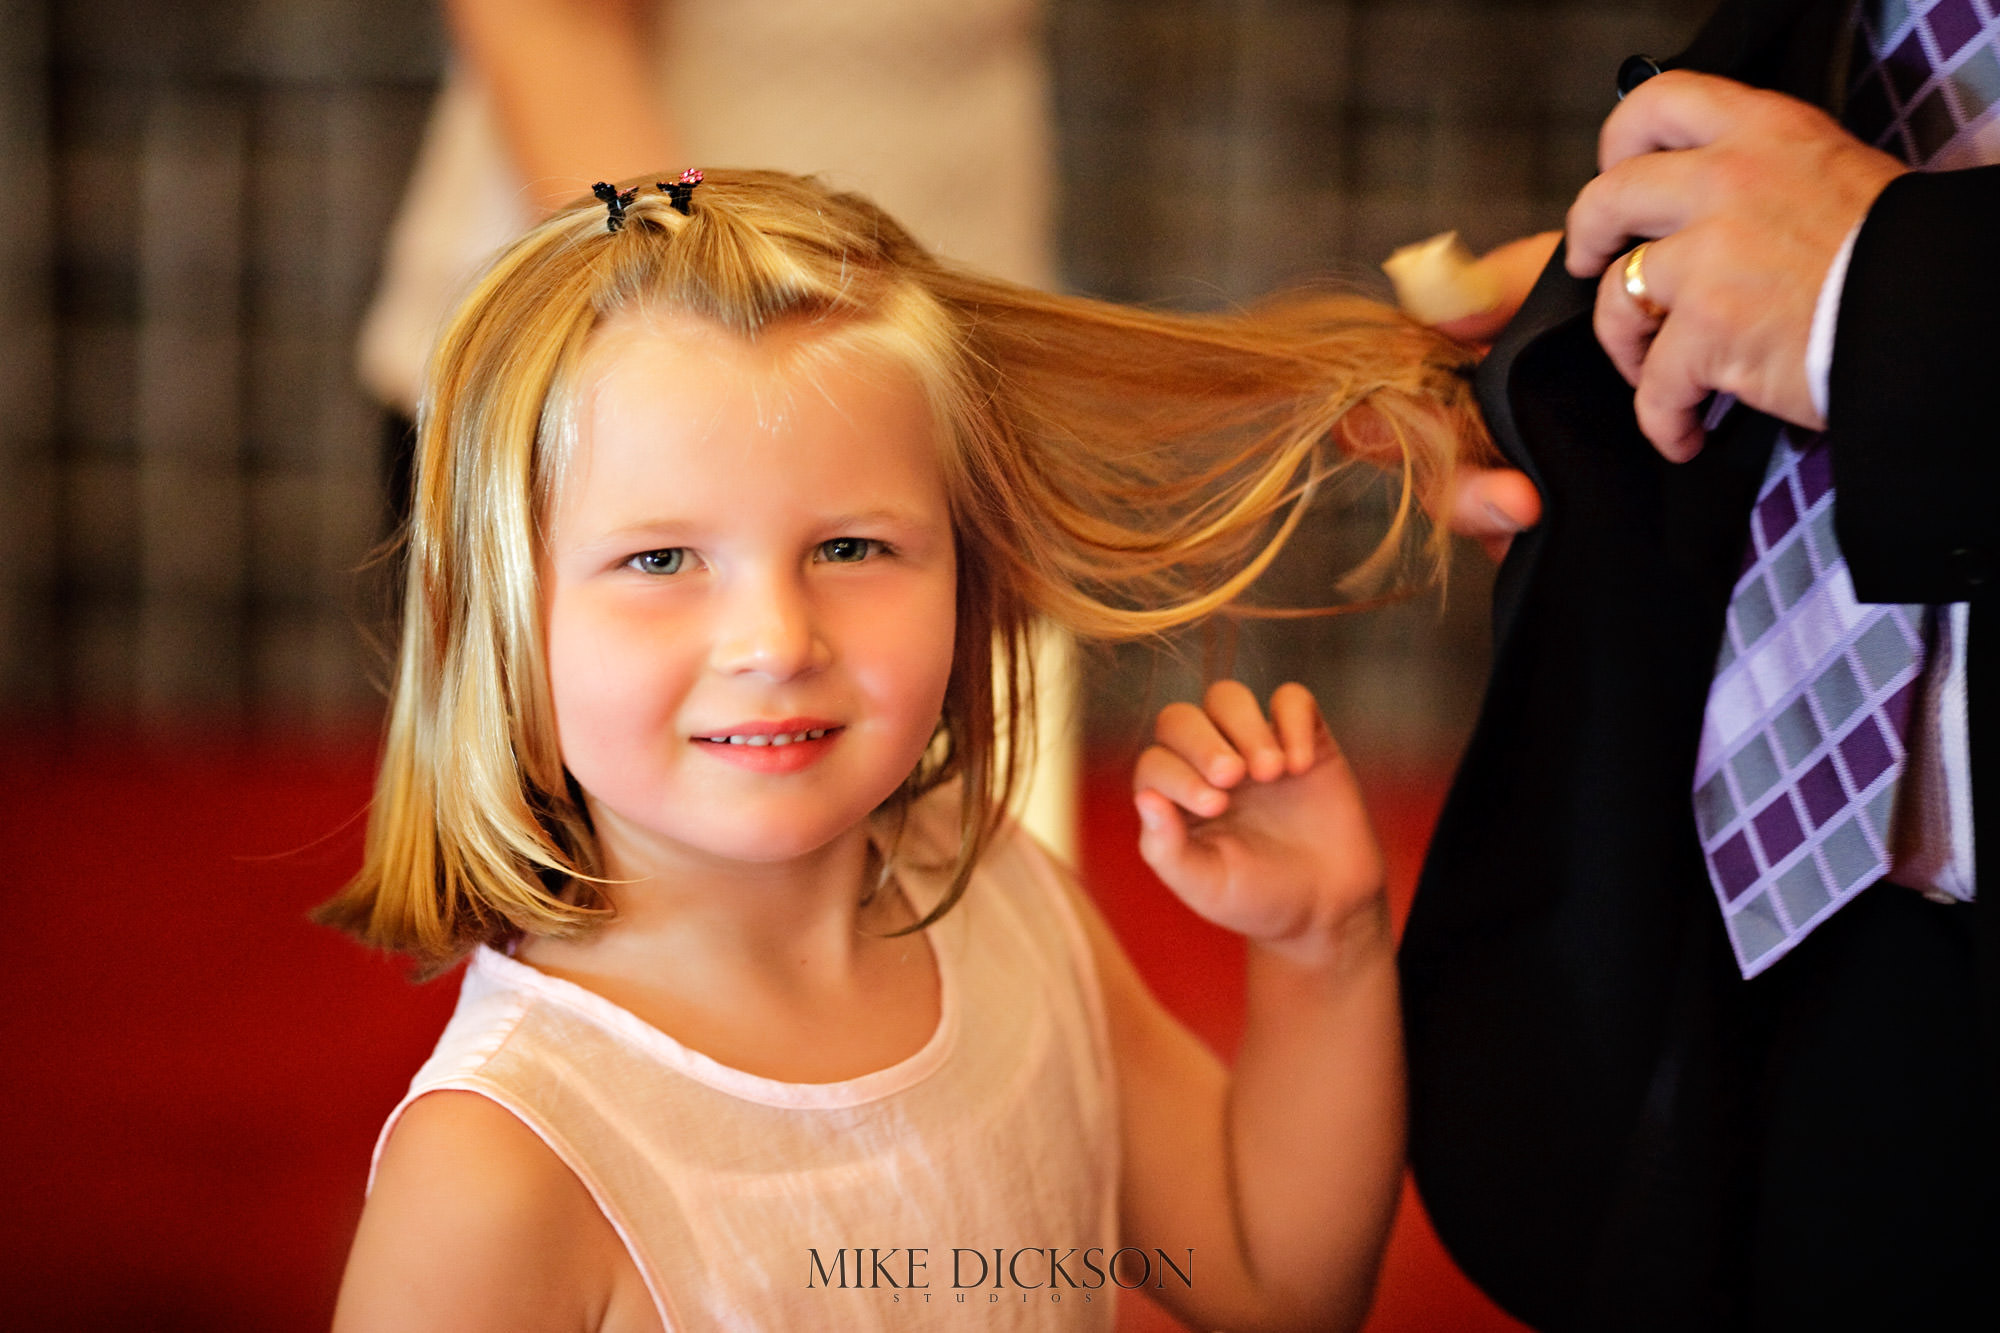 National Arts Centre, Preparation, Salon, Summer, Wedding, © Mike Dickson